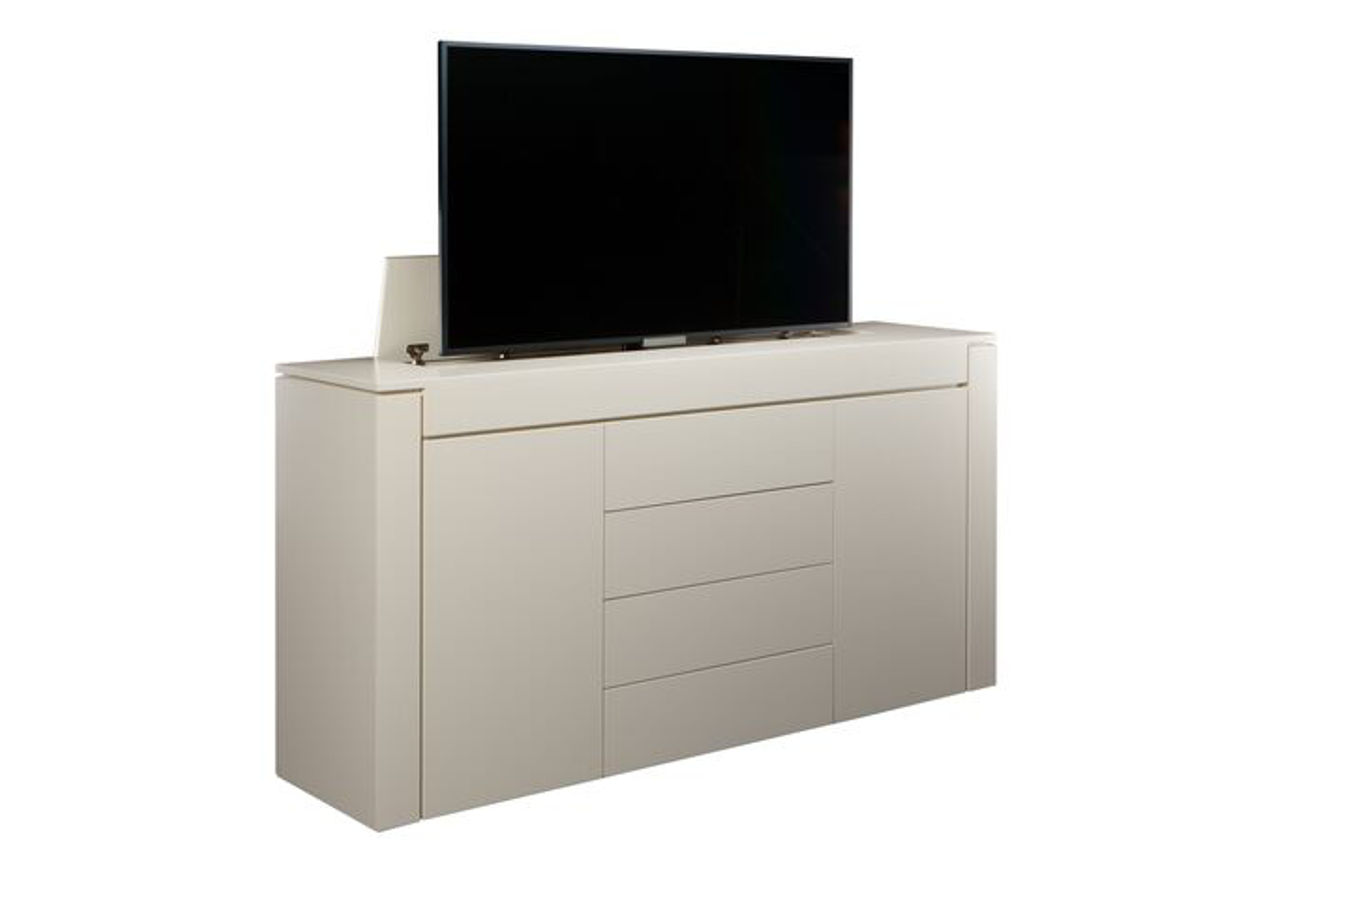 modern buffet in white modern buffet in white custom modern motorized tv lift cabinet - Tv Lift Cabinet